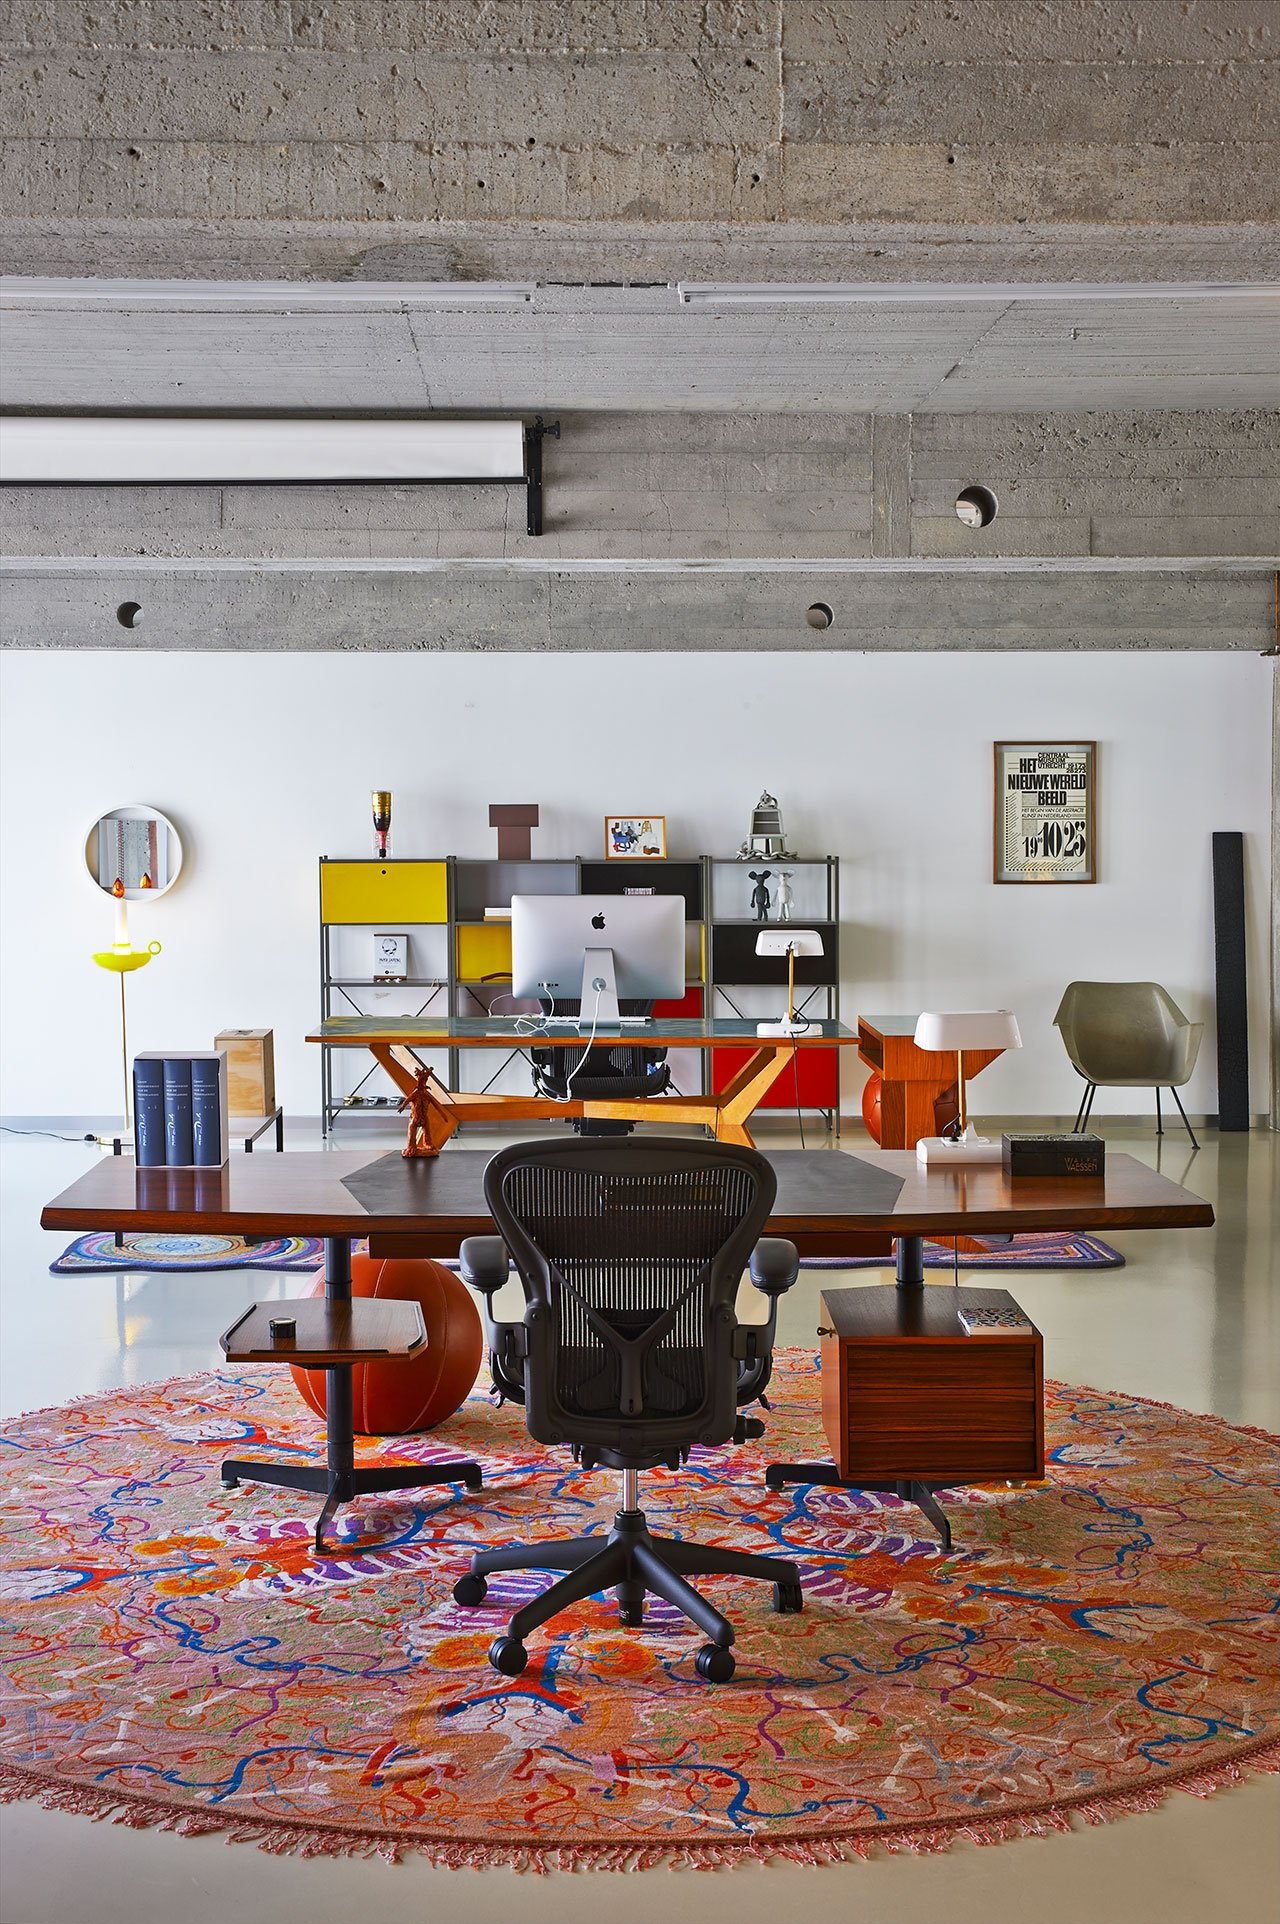 desk chair mat for carpet back support office chairs an objective canvas: the idiosyncratic loft of studio job in antwerp | yatzer